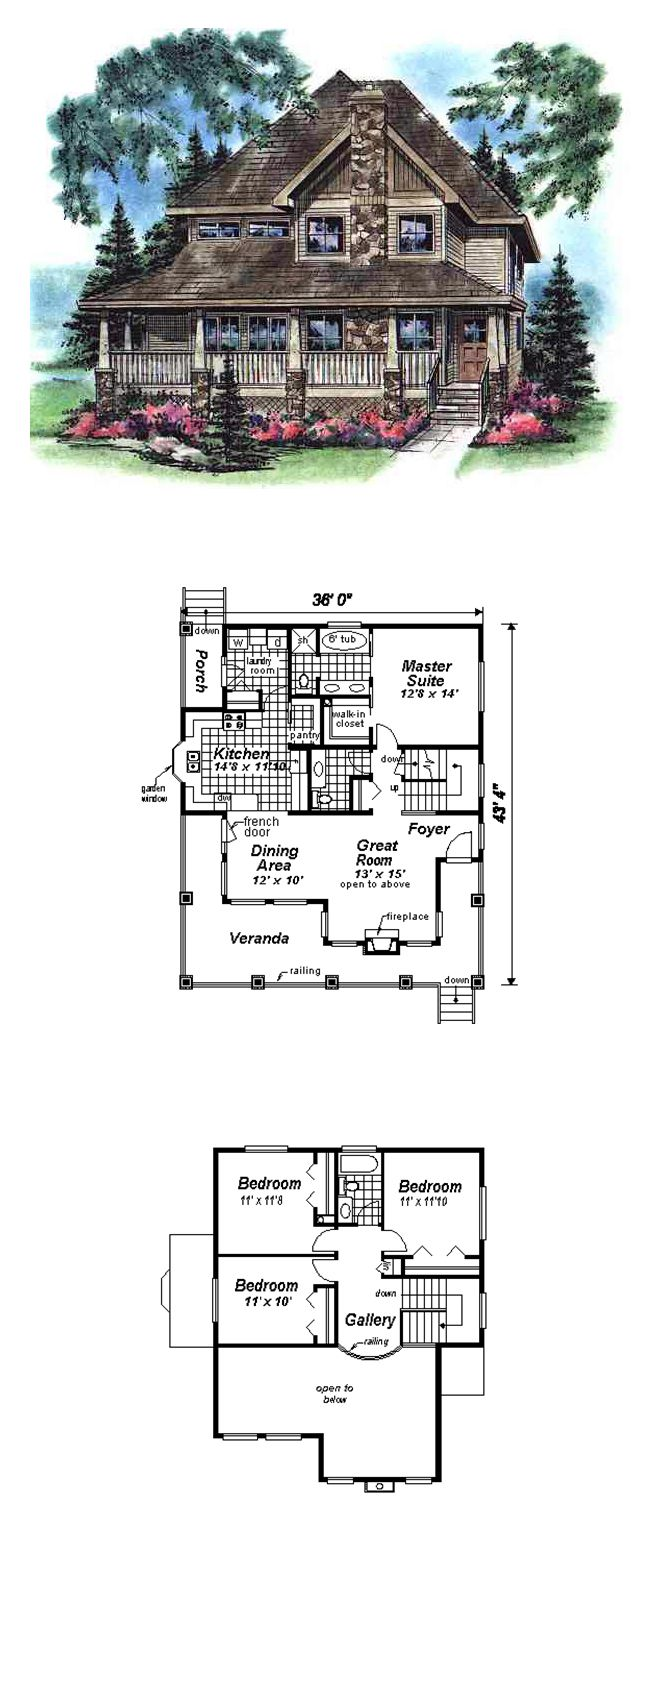 50 best images about bungalow house plans on pinterest - Bungalow house plans with attached garage ...